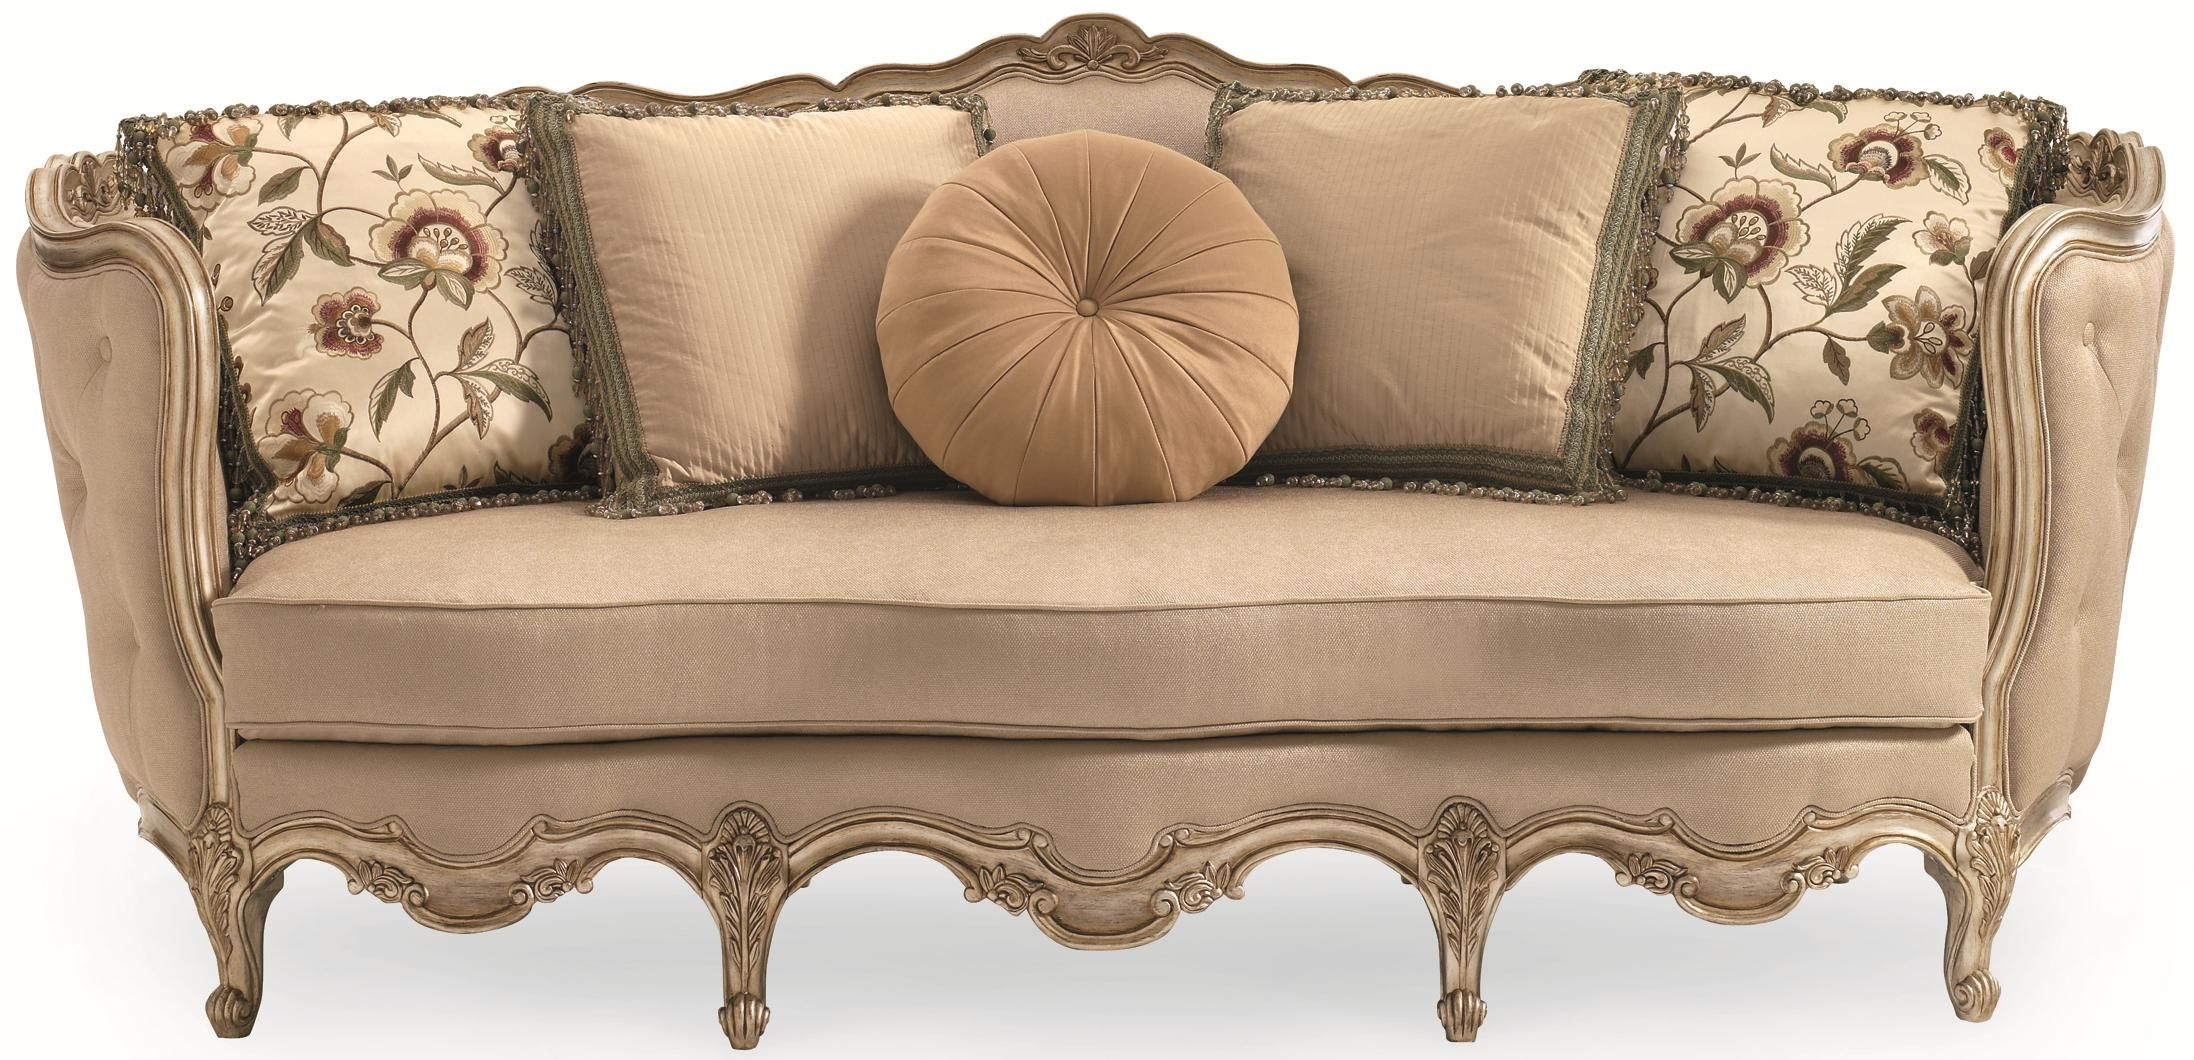 Florence Florence Carved Wood Sofa by Schnadig